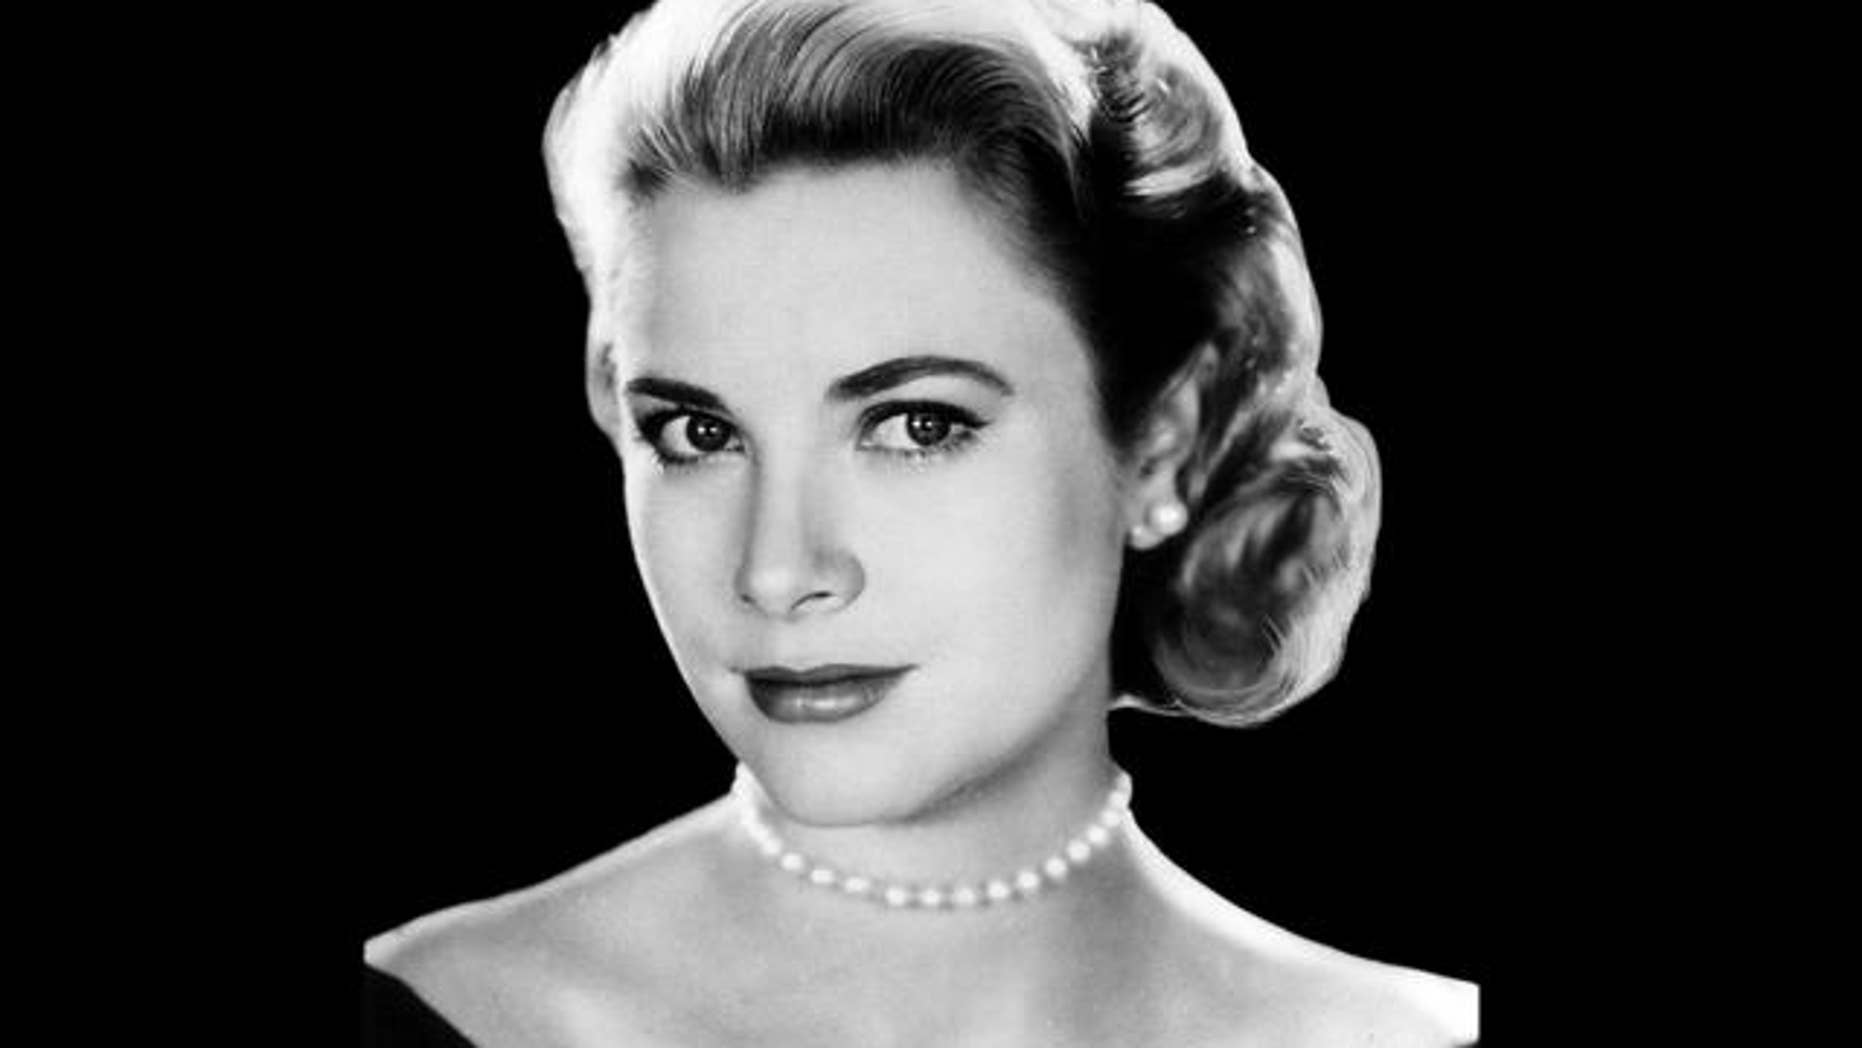 grace kelly still yearned to act after becoming princess of monaco